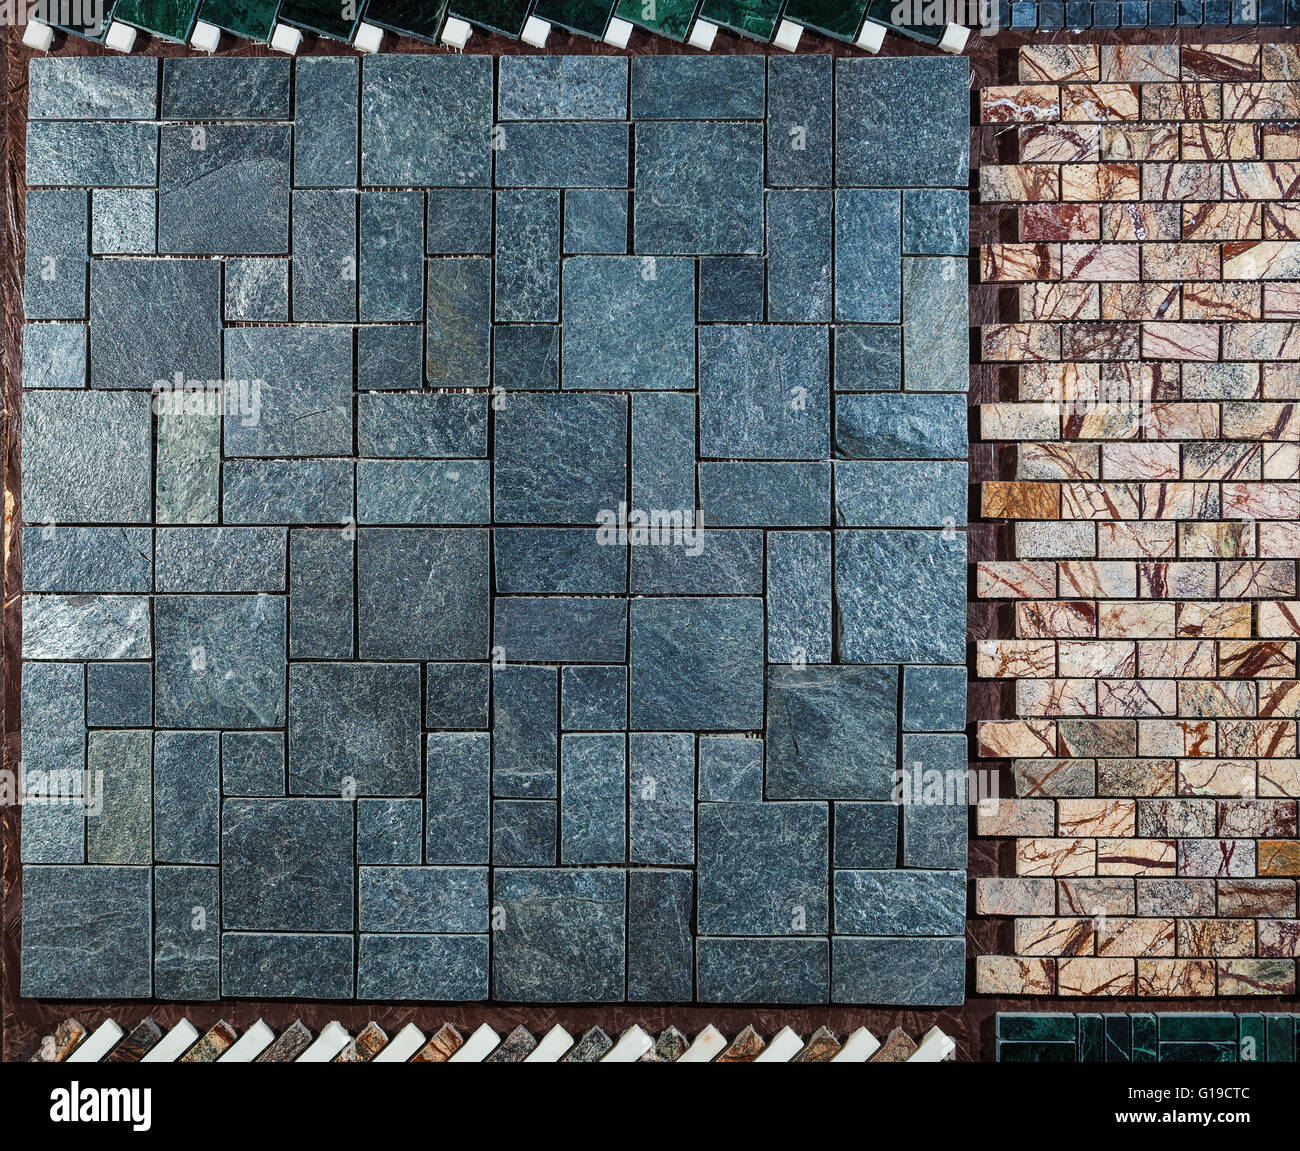 Marble Wall Or Floor Made Of Different Types Of Tiles Stock Photo